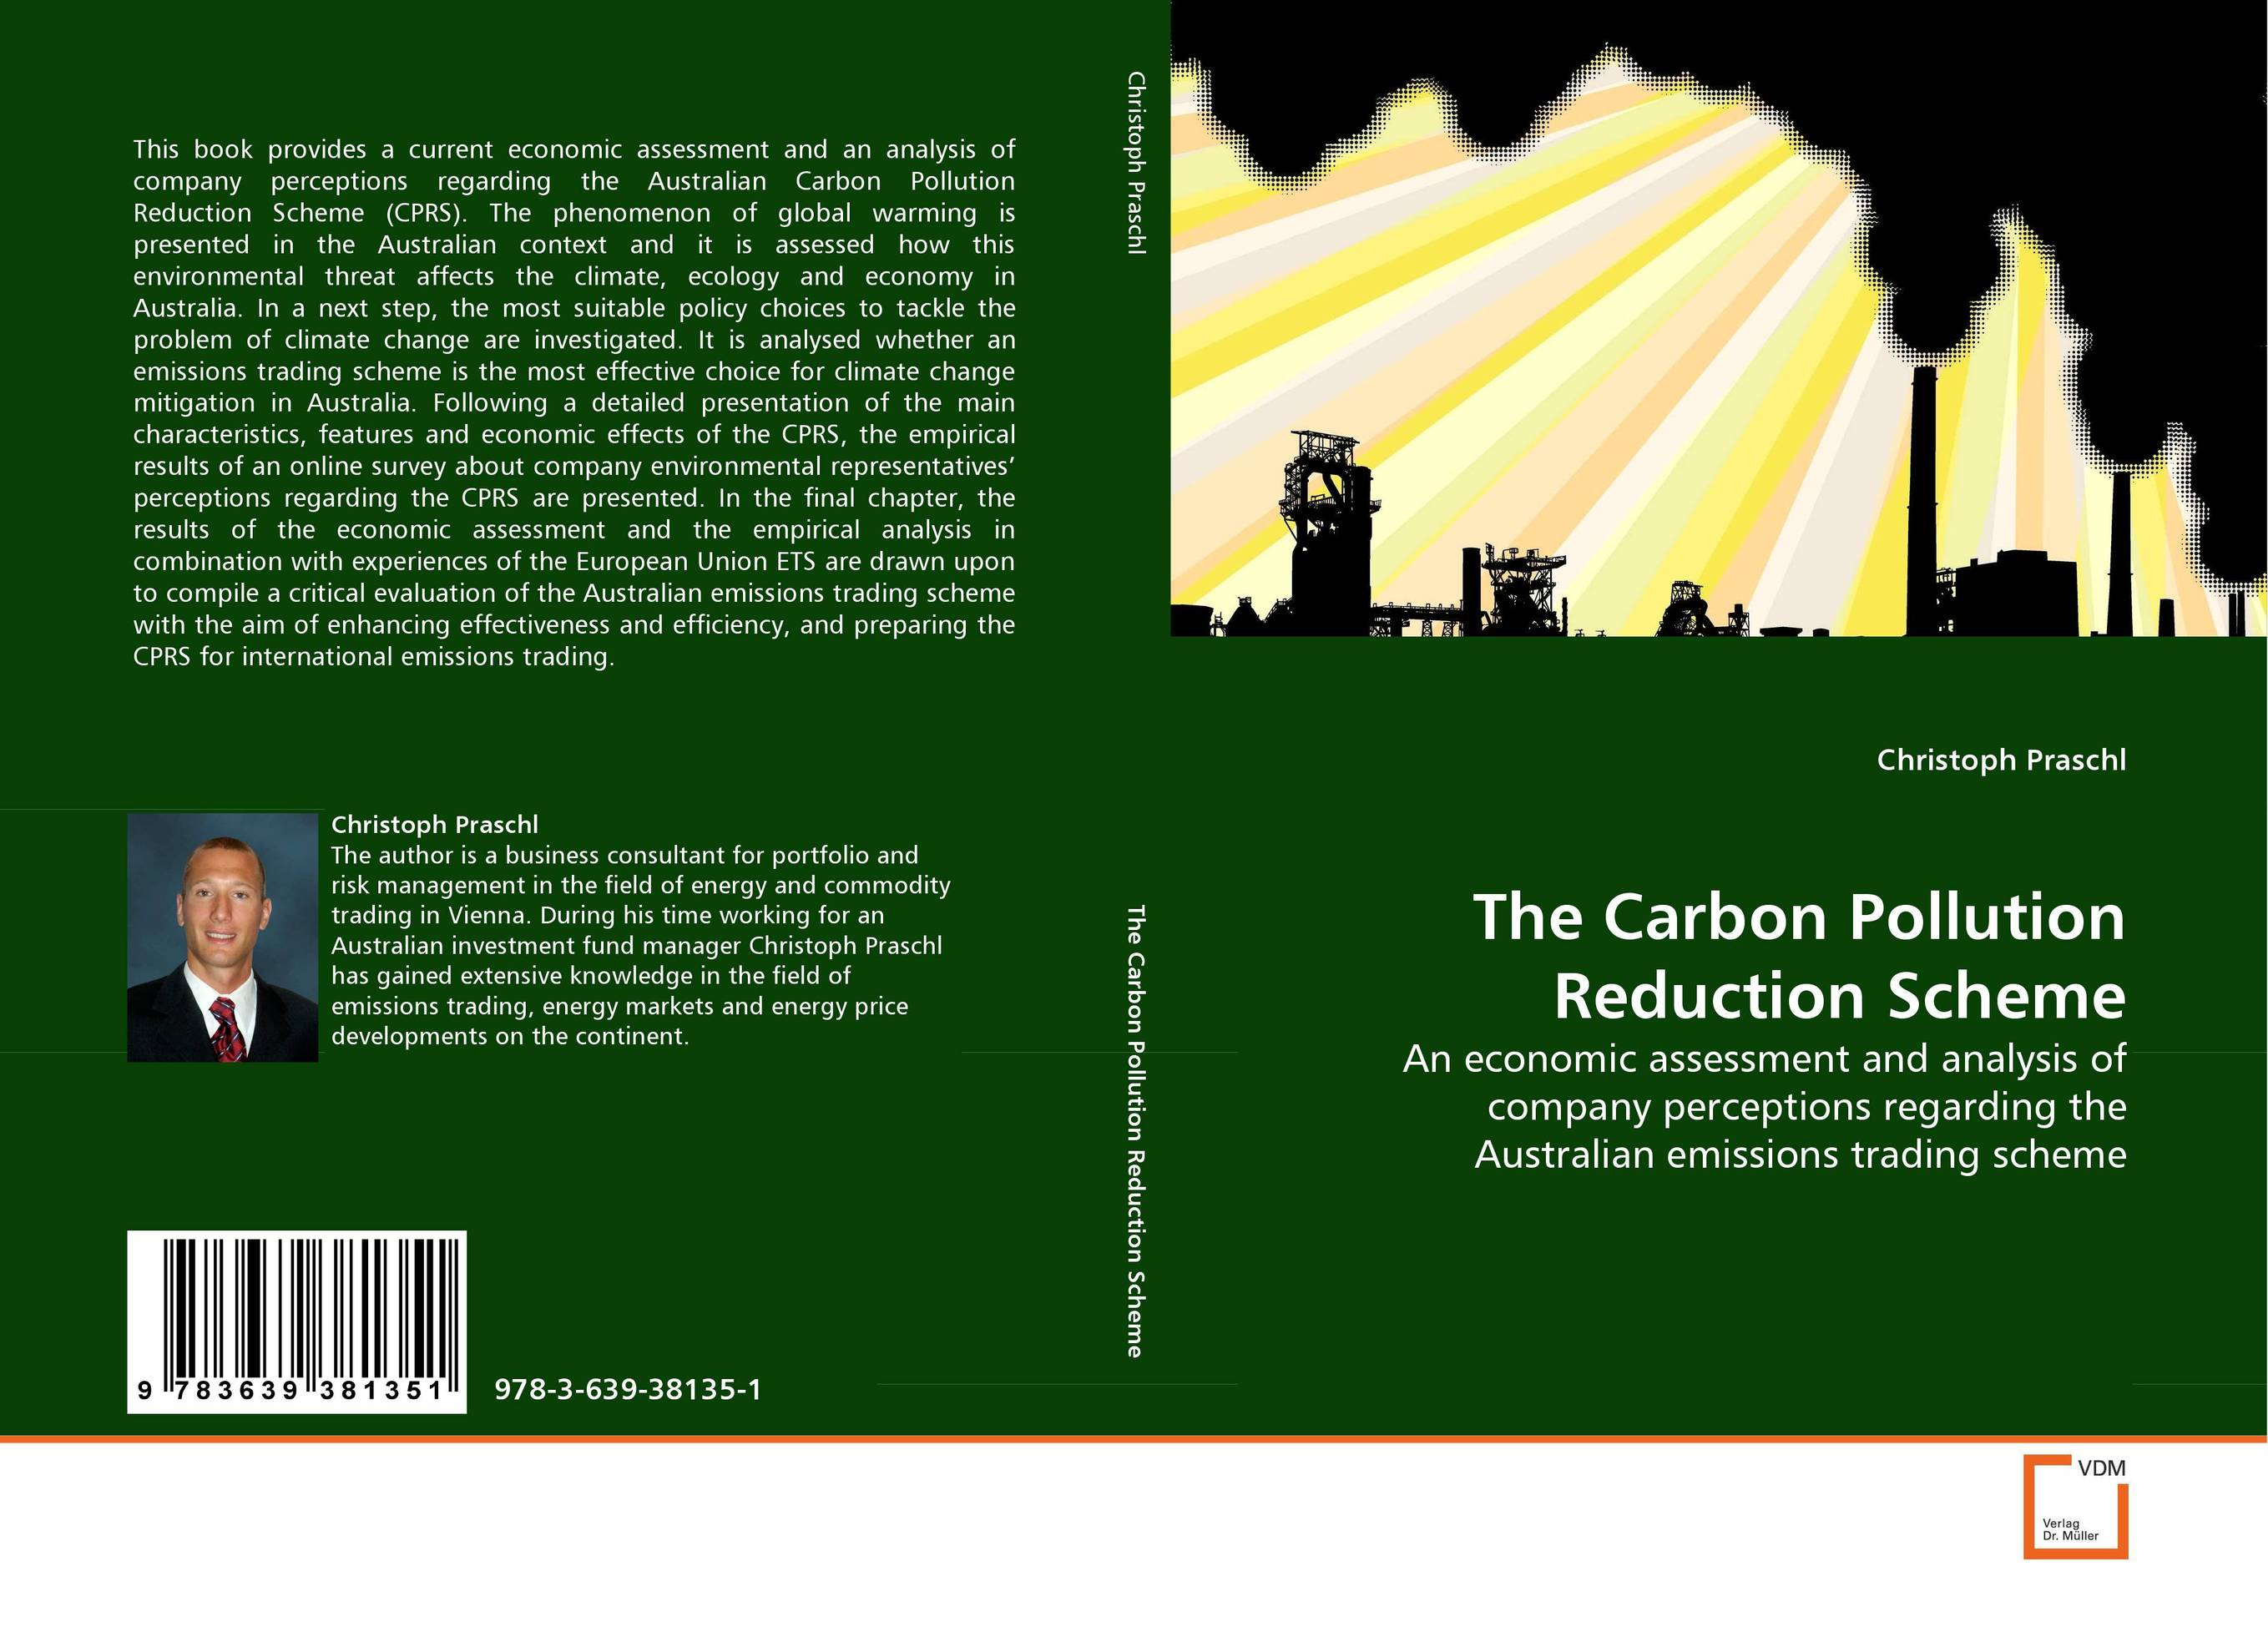 an analysis of mitigation Mitigation costs can be measured at various levels: project, technology, sector or macroeconomic level1 an analysis at the project level provides costs of the implementation of specific technical facilities, infrastructure, demand-side regulations, information efforts or technical standards, and is.